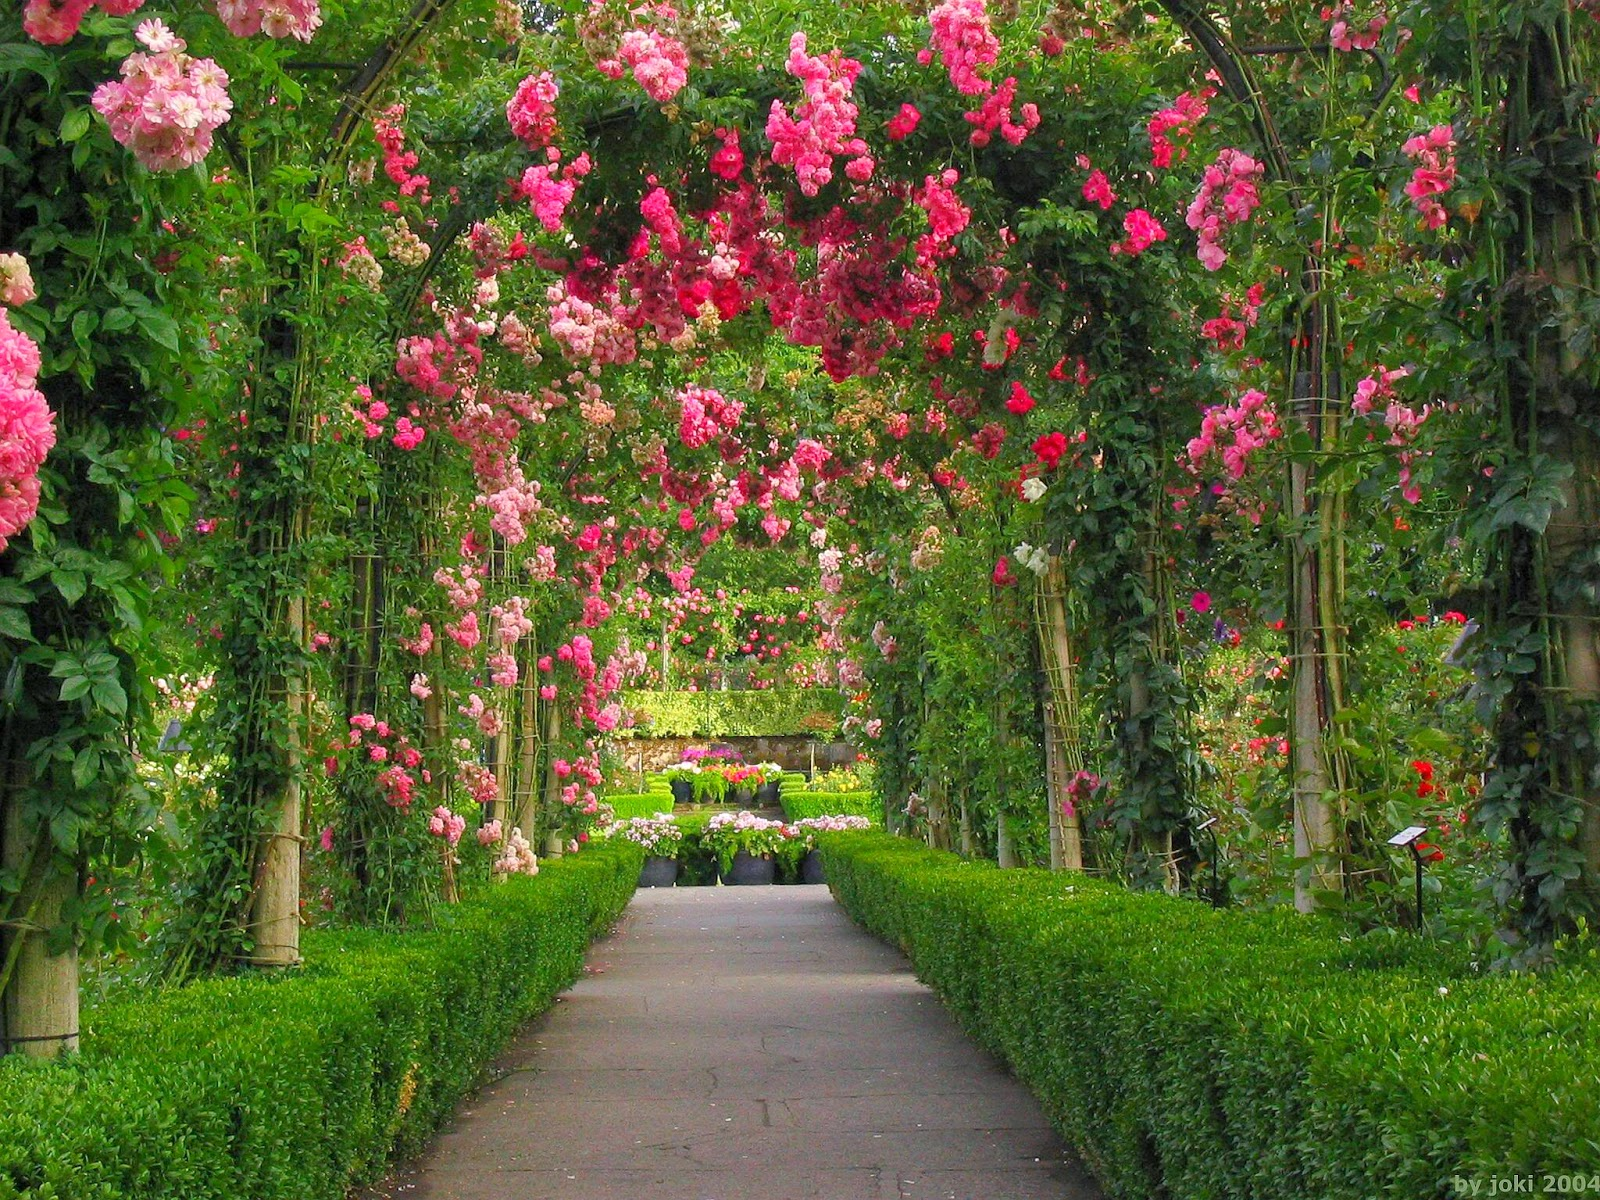 Red Rose Flower Garden Wallpaper Http Refreshrose